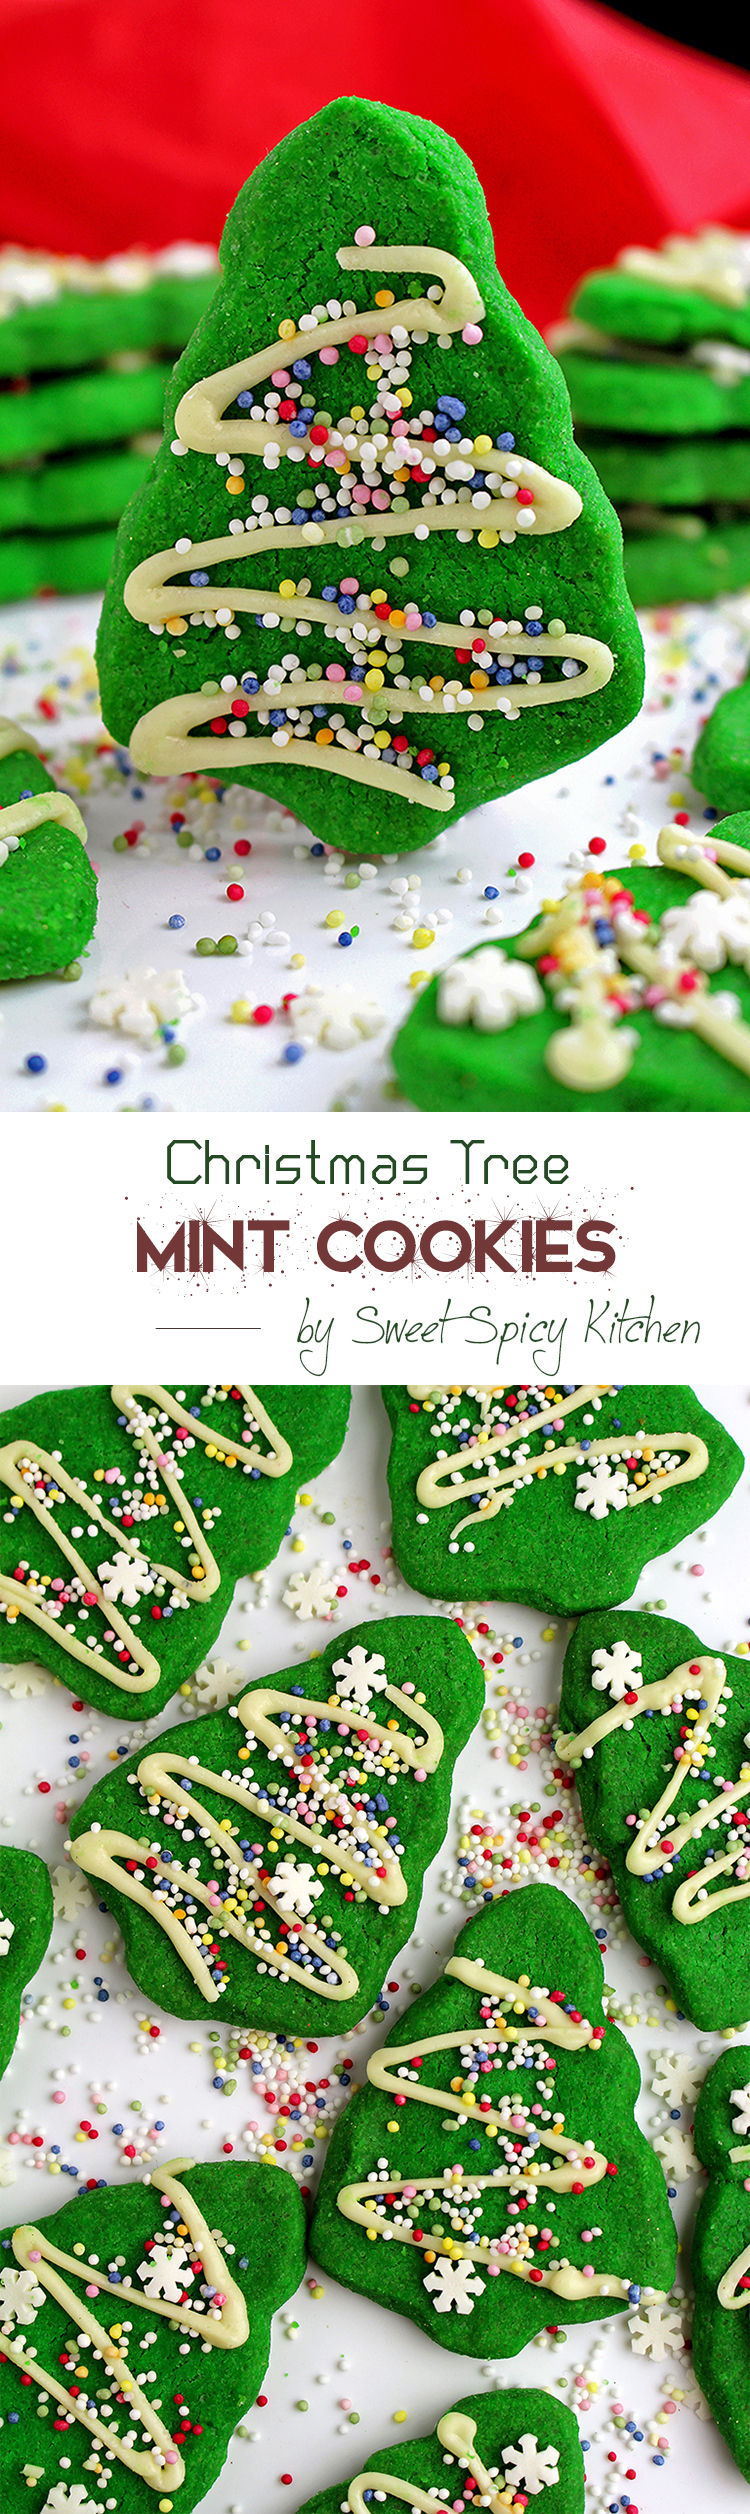 Untitled-22 Christmas Tree Mint Cookies